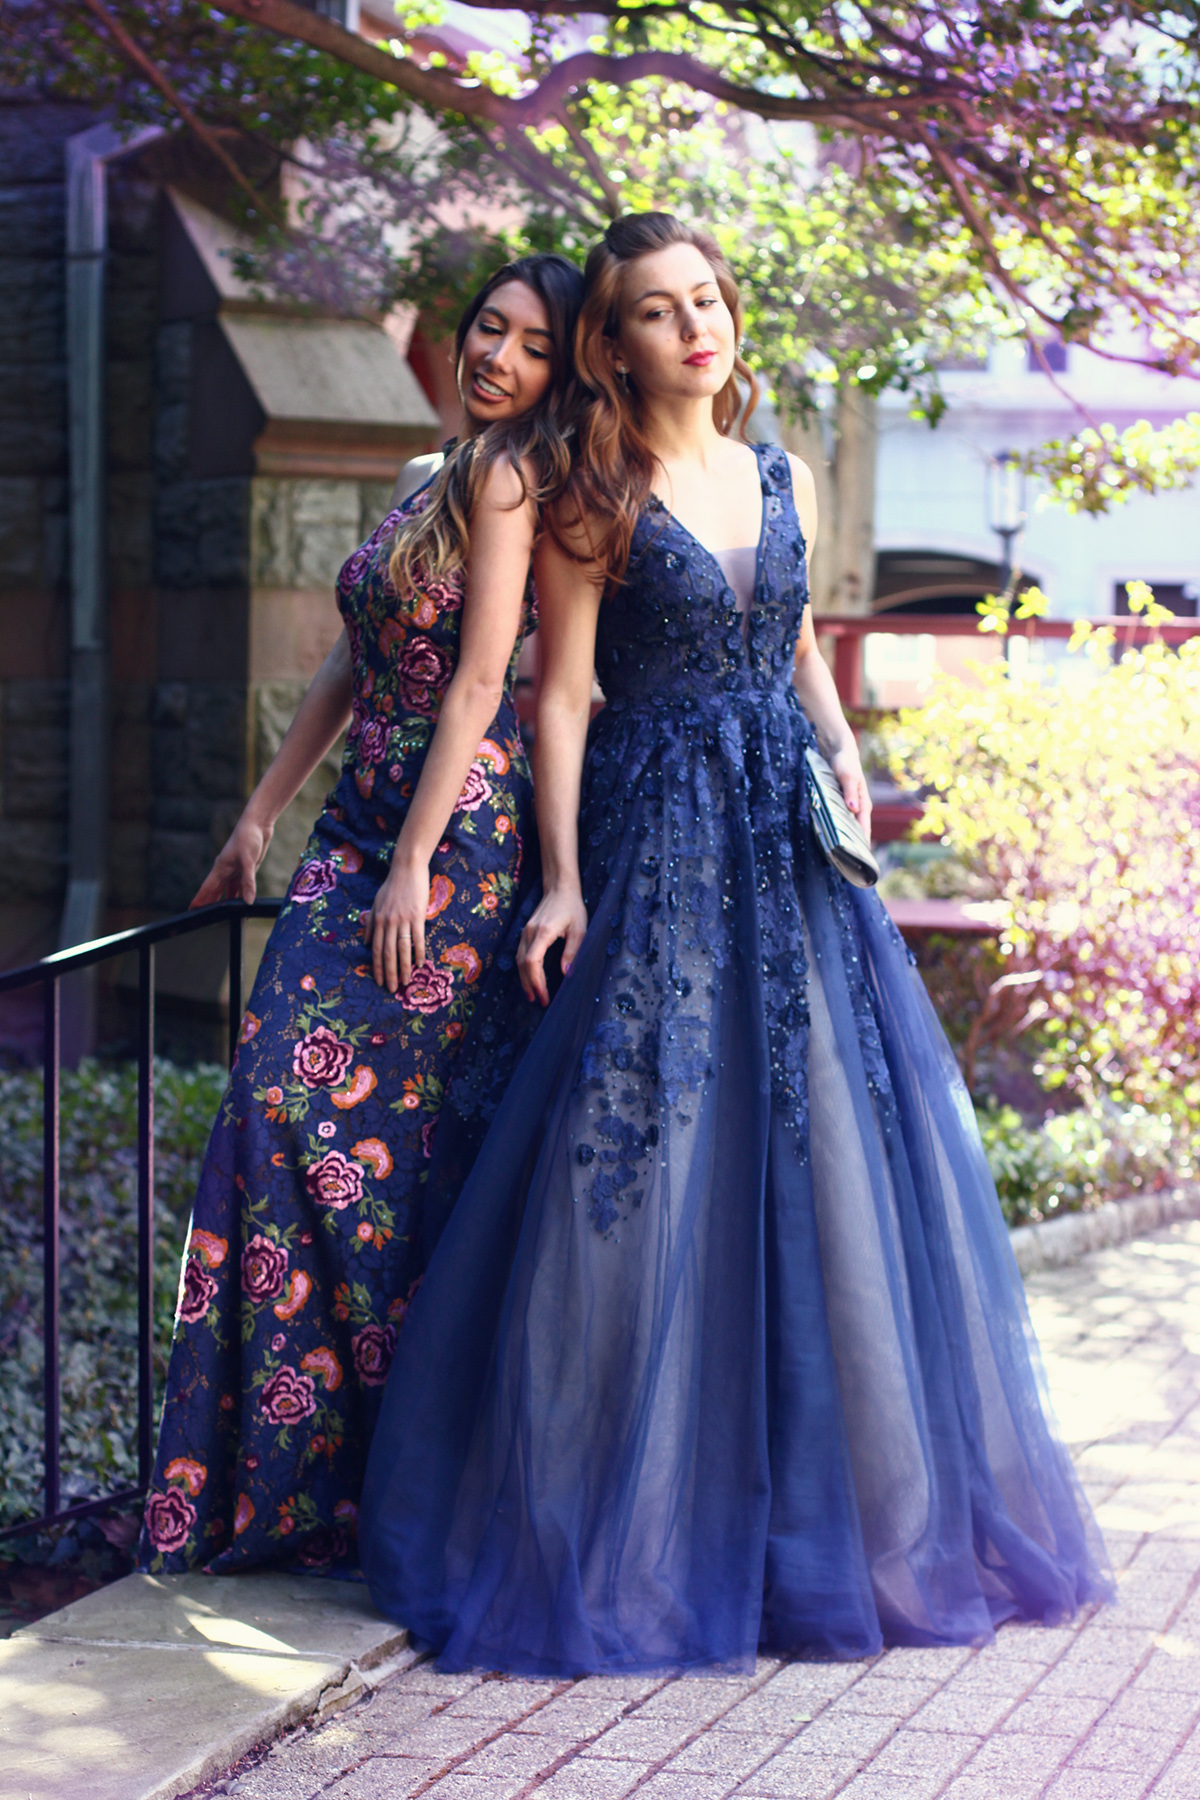 Russian bloggers in Connecticut, Prom dresses 2017.